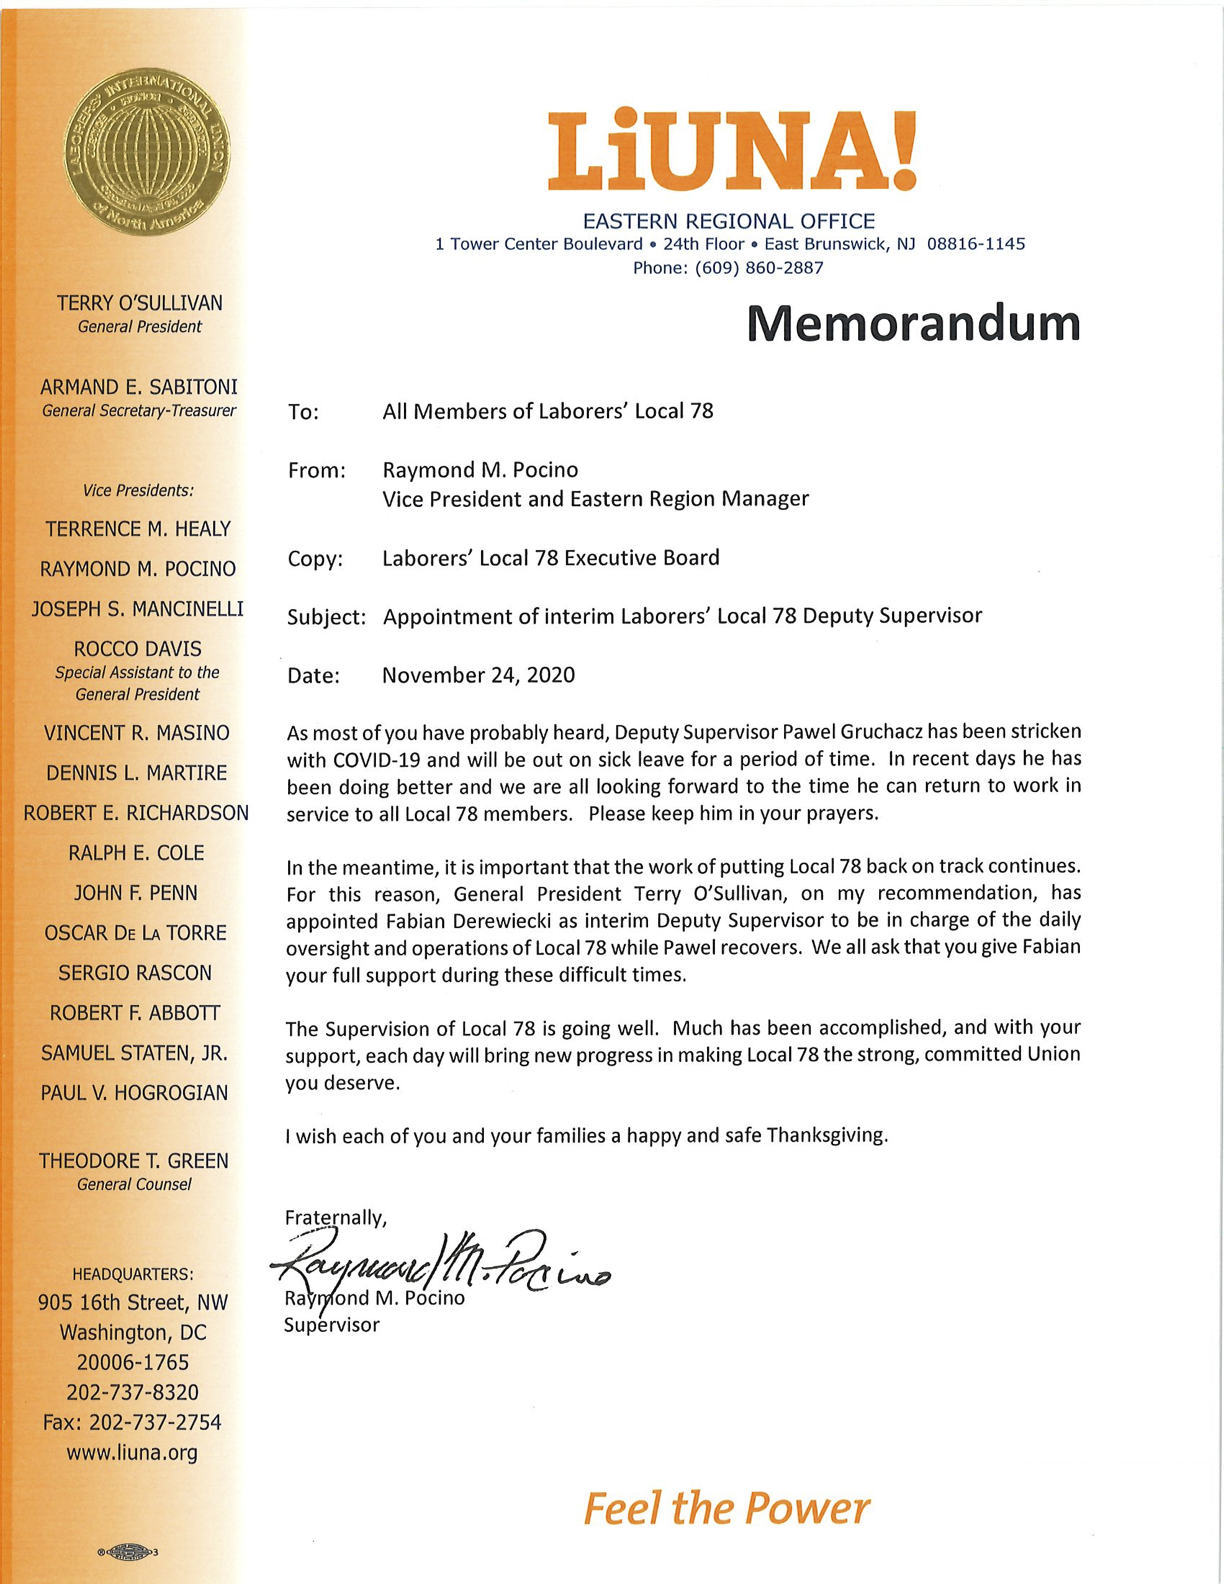 Appointment of Interim Laborers' Local 78 Deputy Supervisor